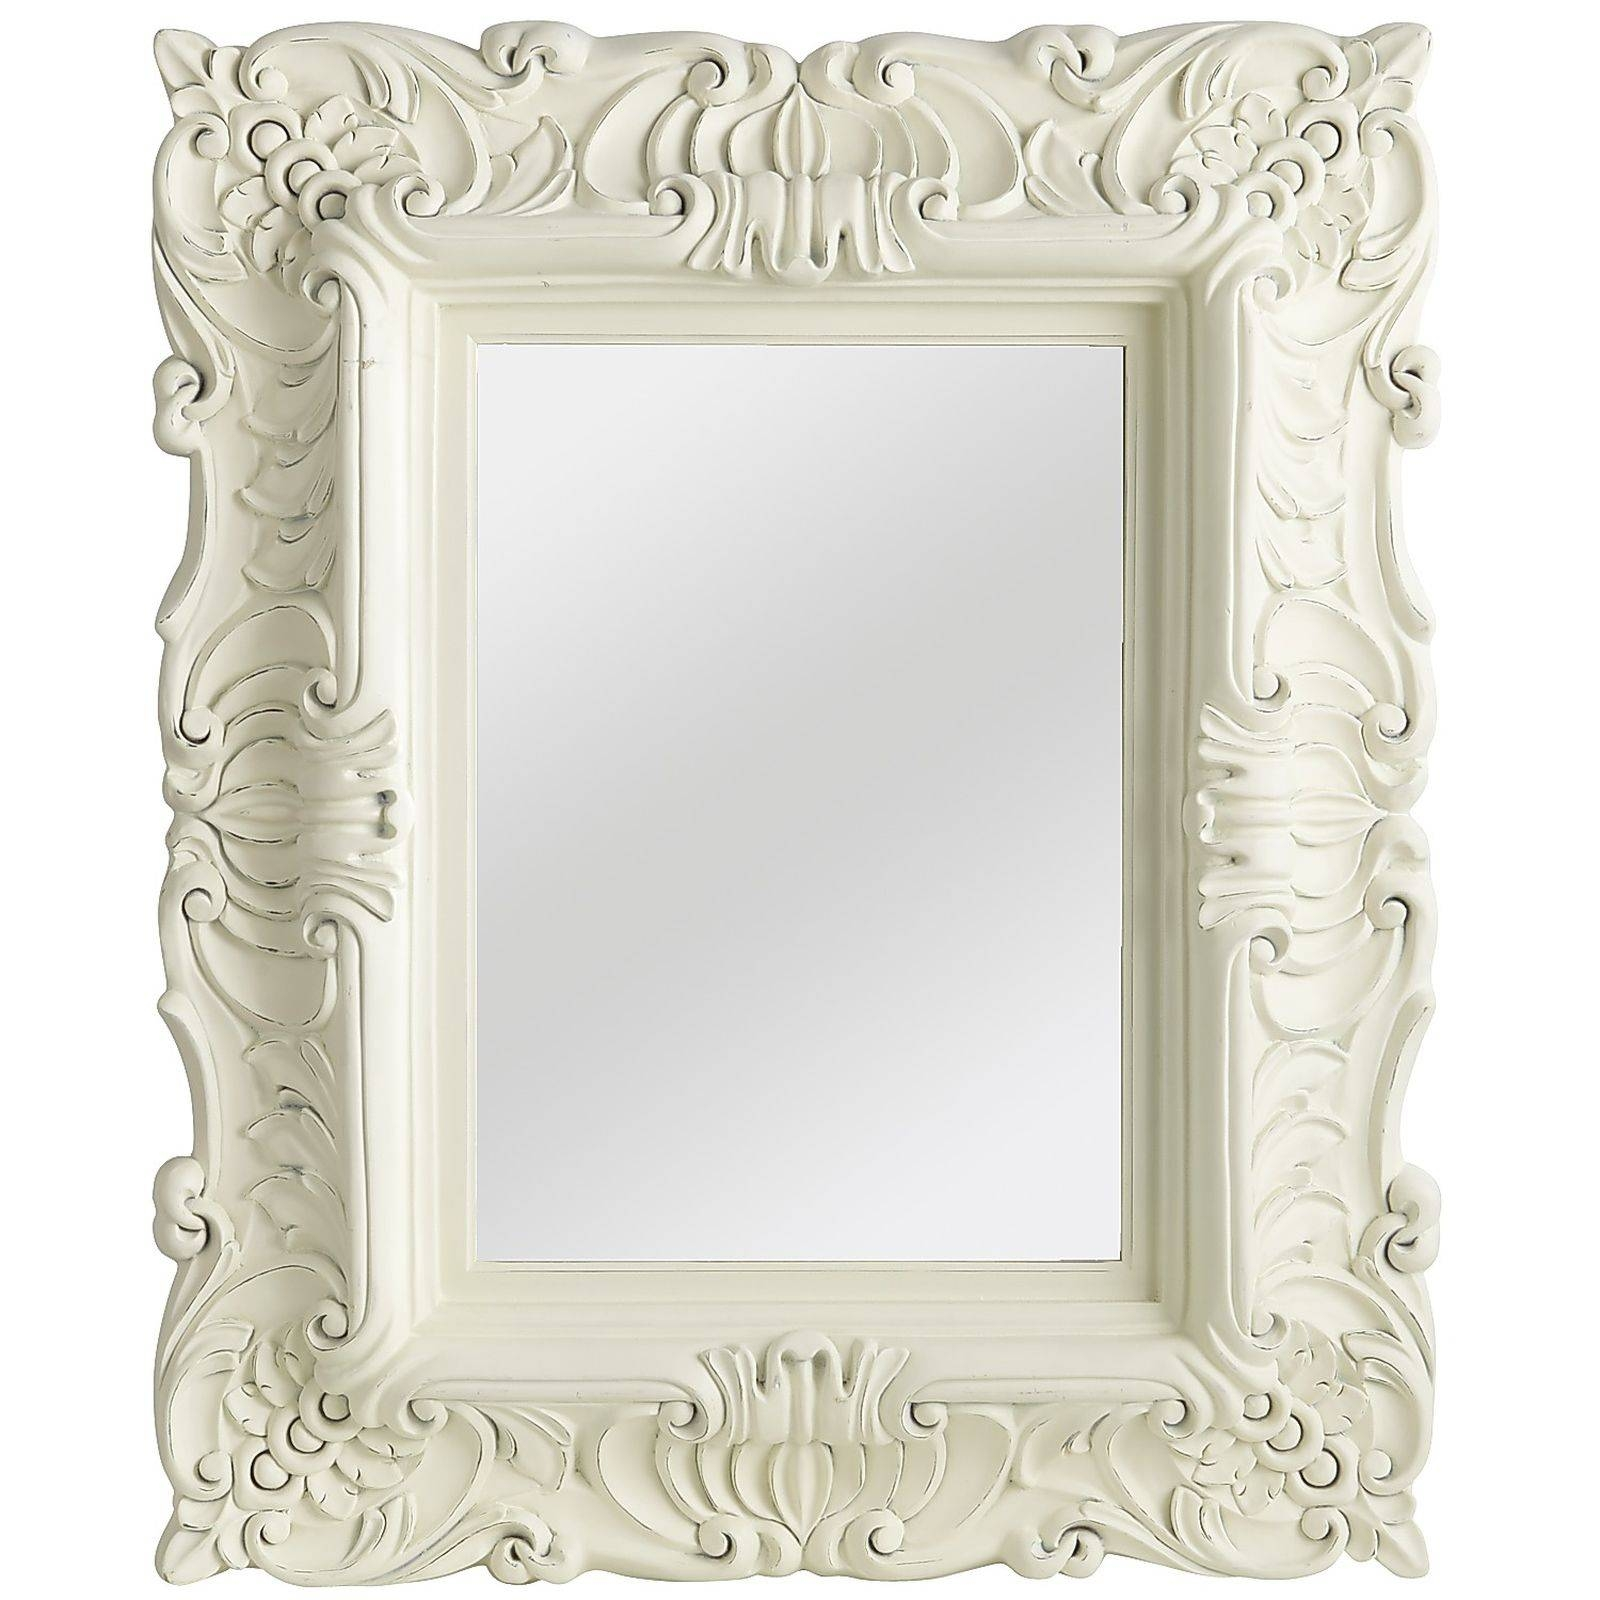 Pier One Wall Mirrors | Vanity Decoration inside Modern Baroque Mirrors (Image 14 of 15)